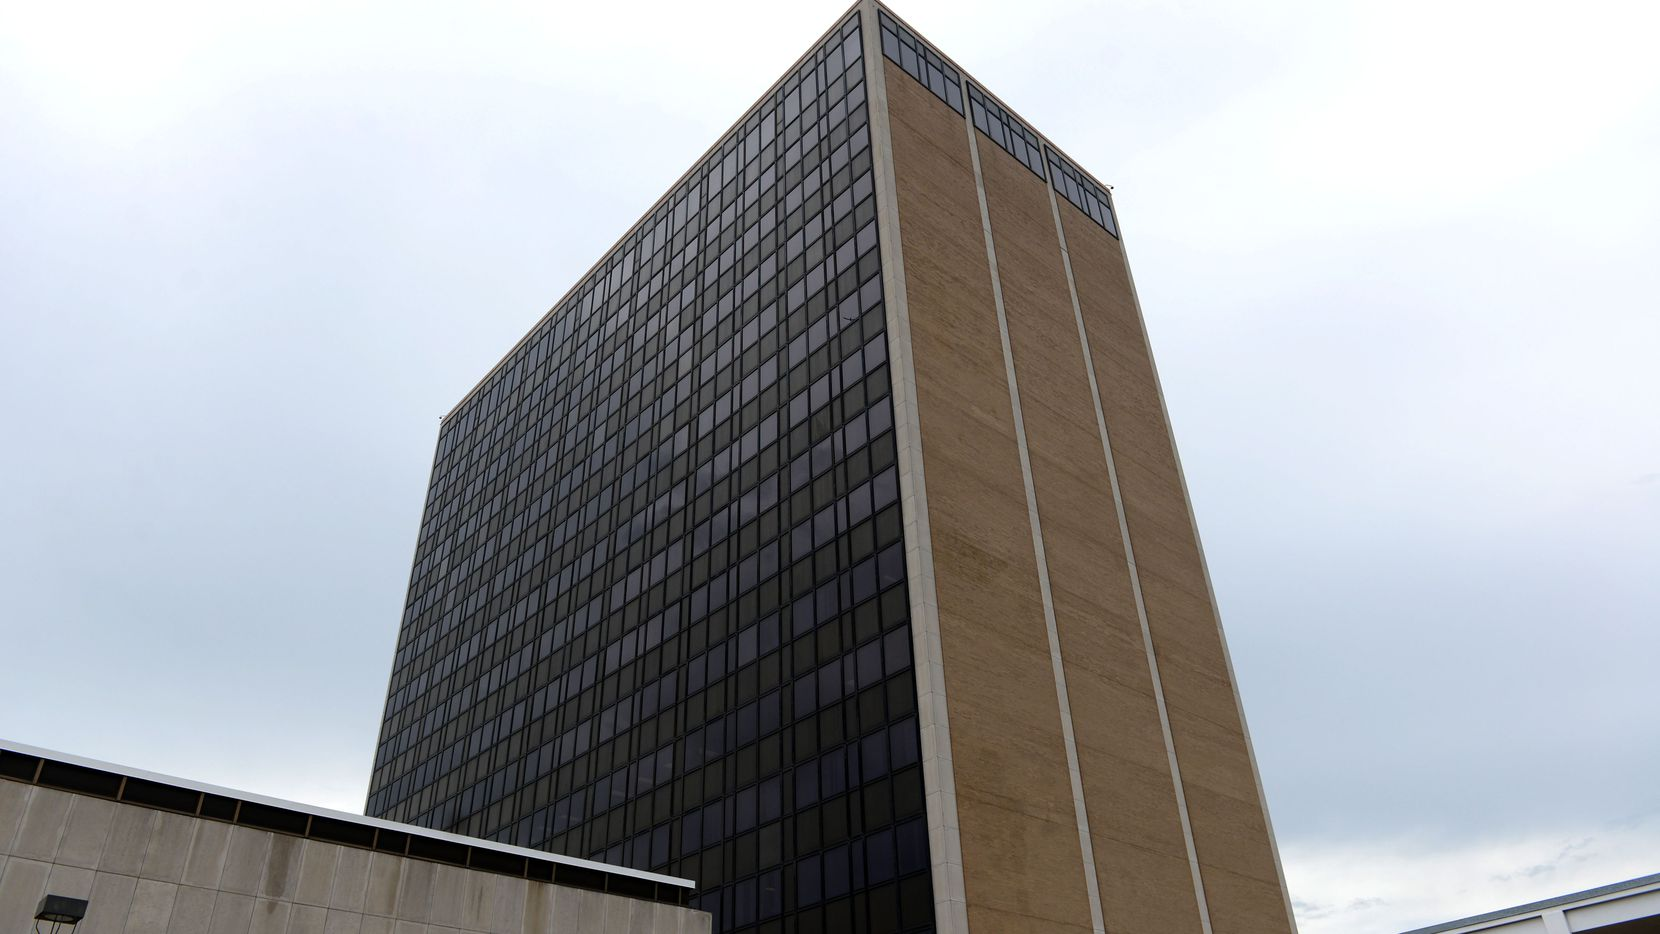 Oak Cliff Tower opened in 1964 at Zang and 12th.